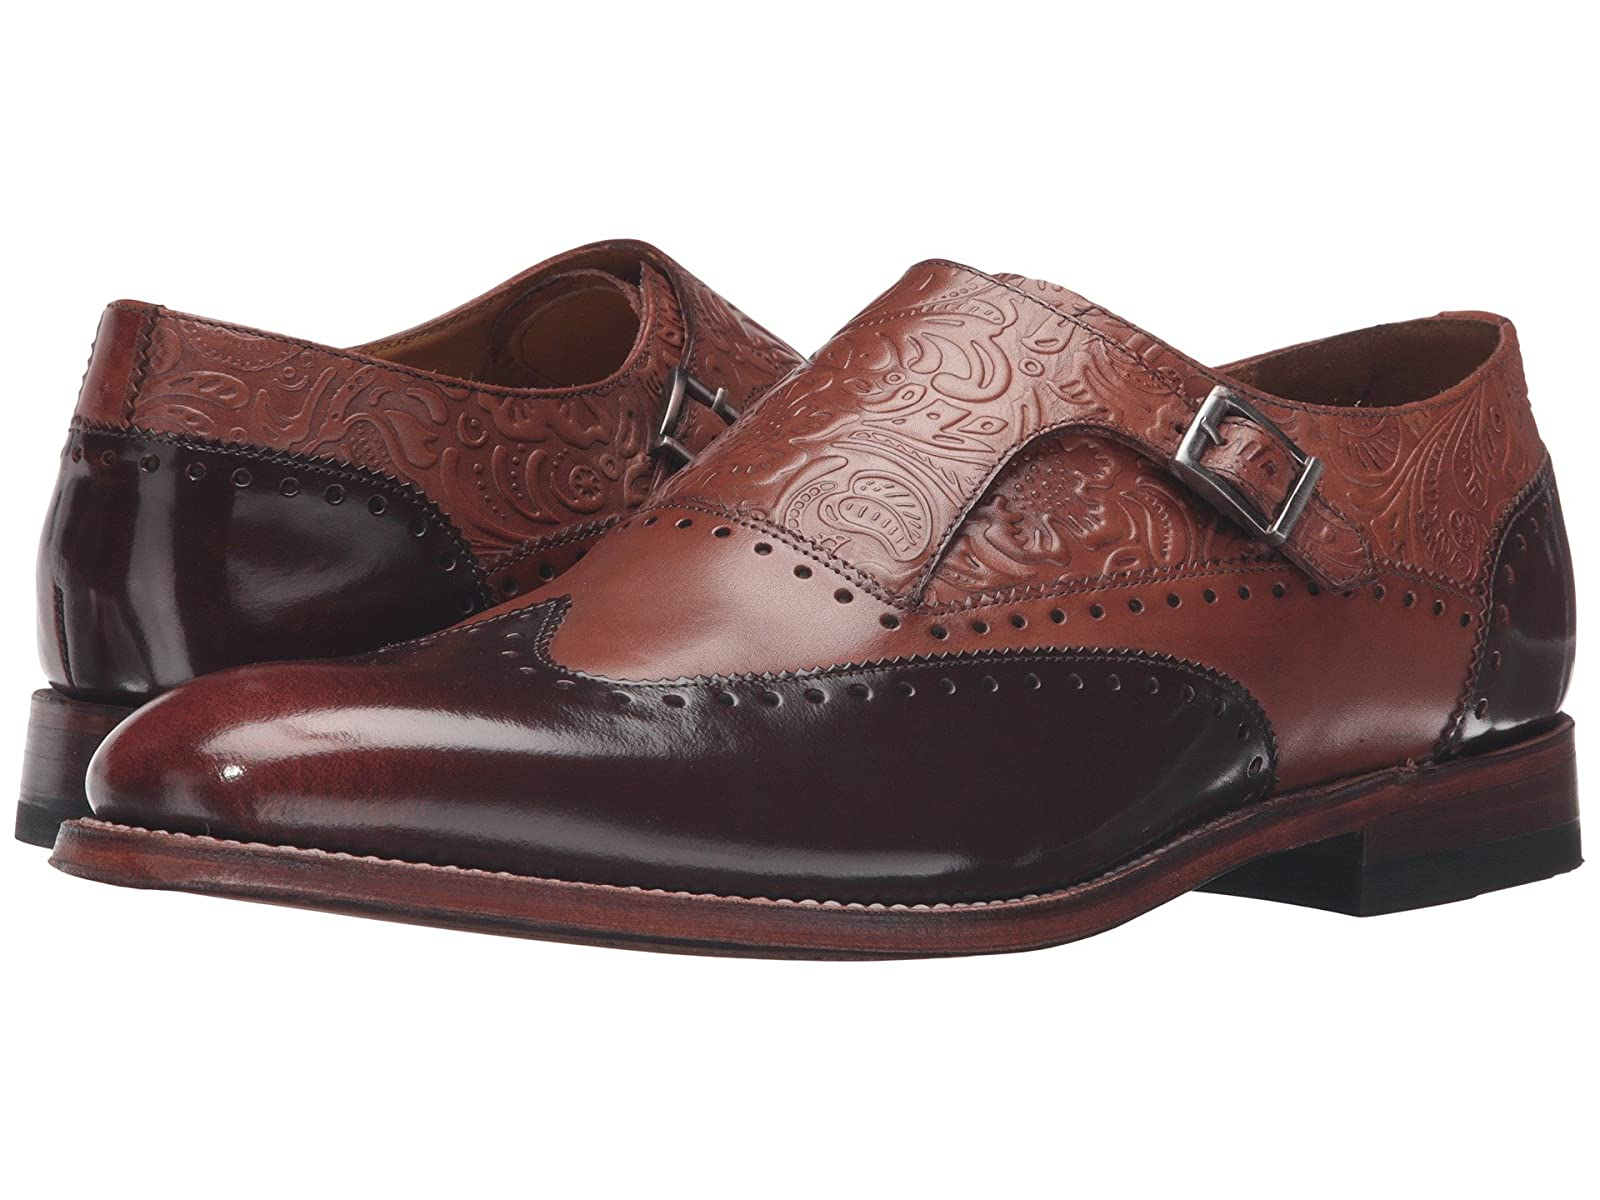 Stacy Adams Madison II Monk Strap WingtipAtmospheric grades have affordable shoes